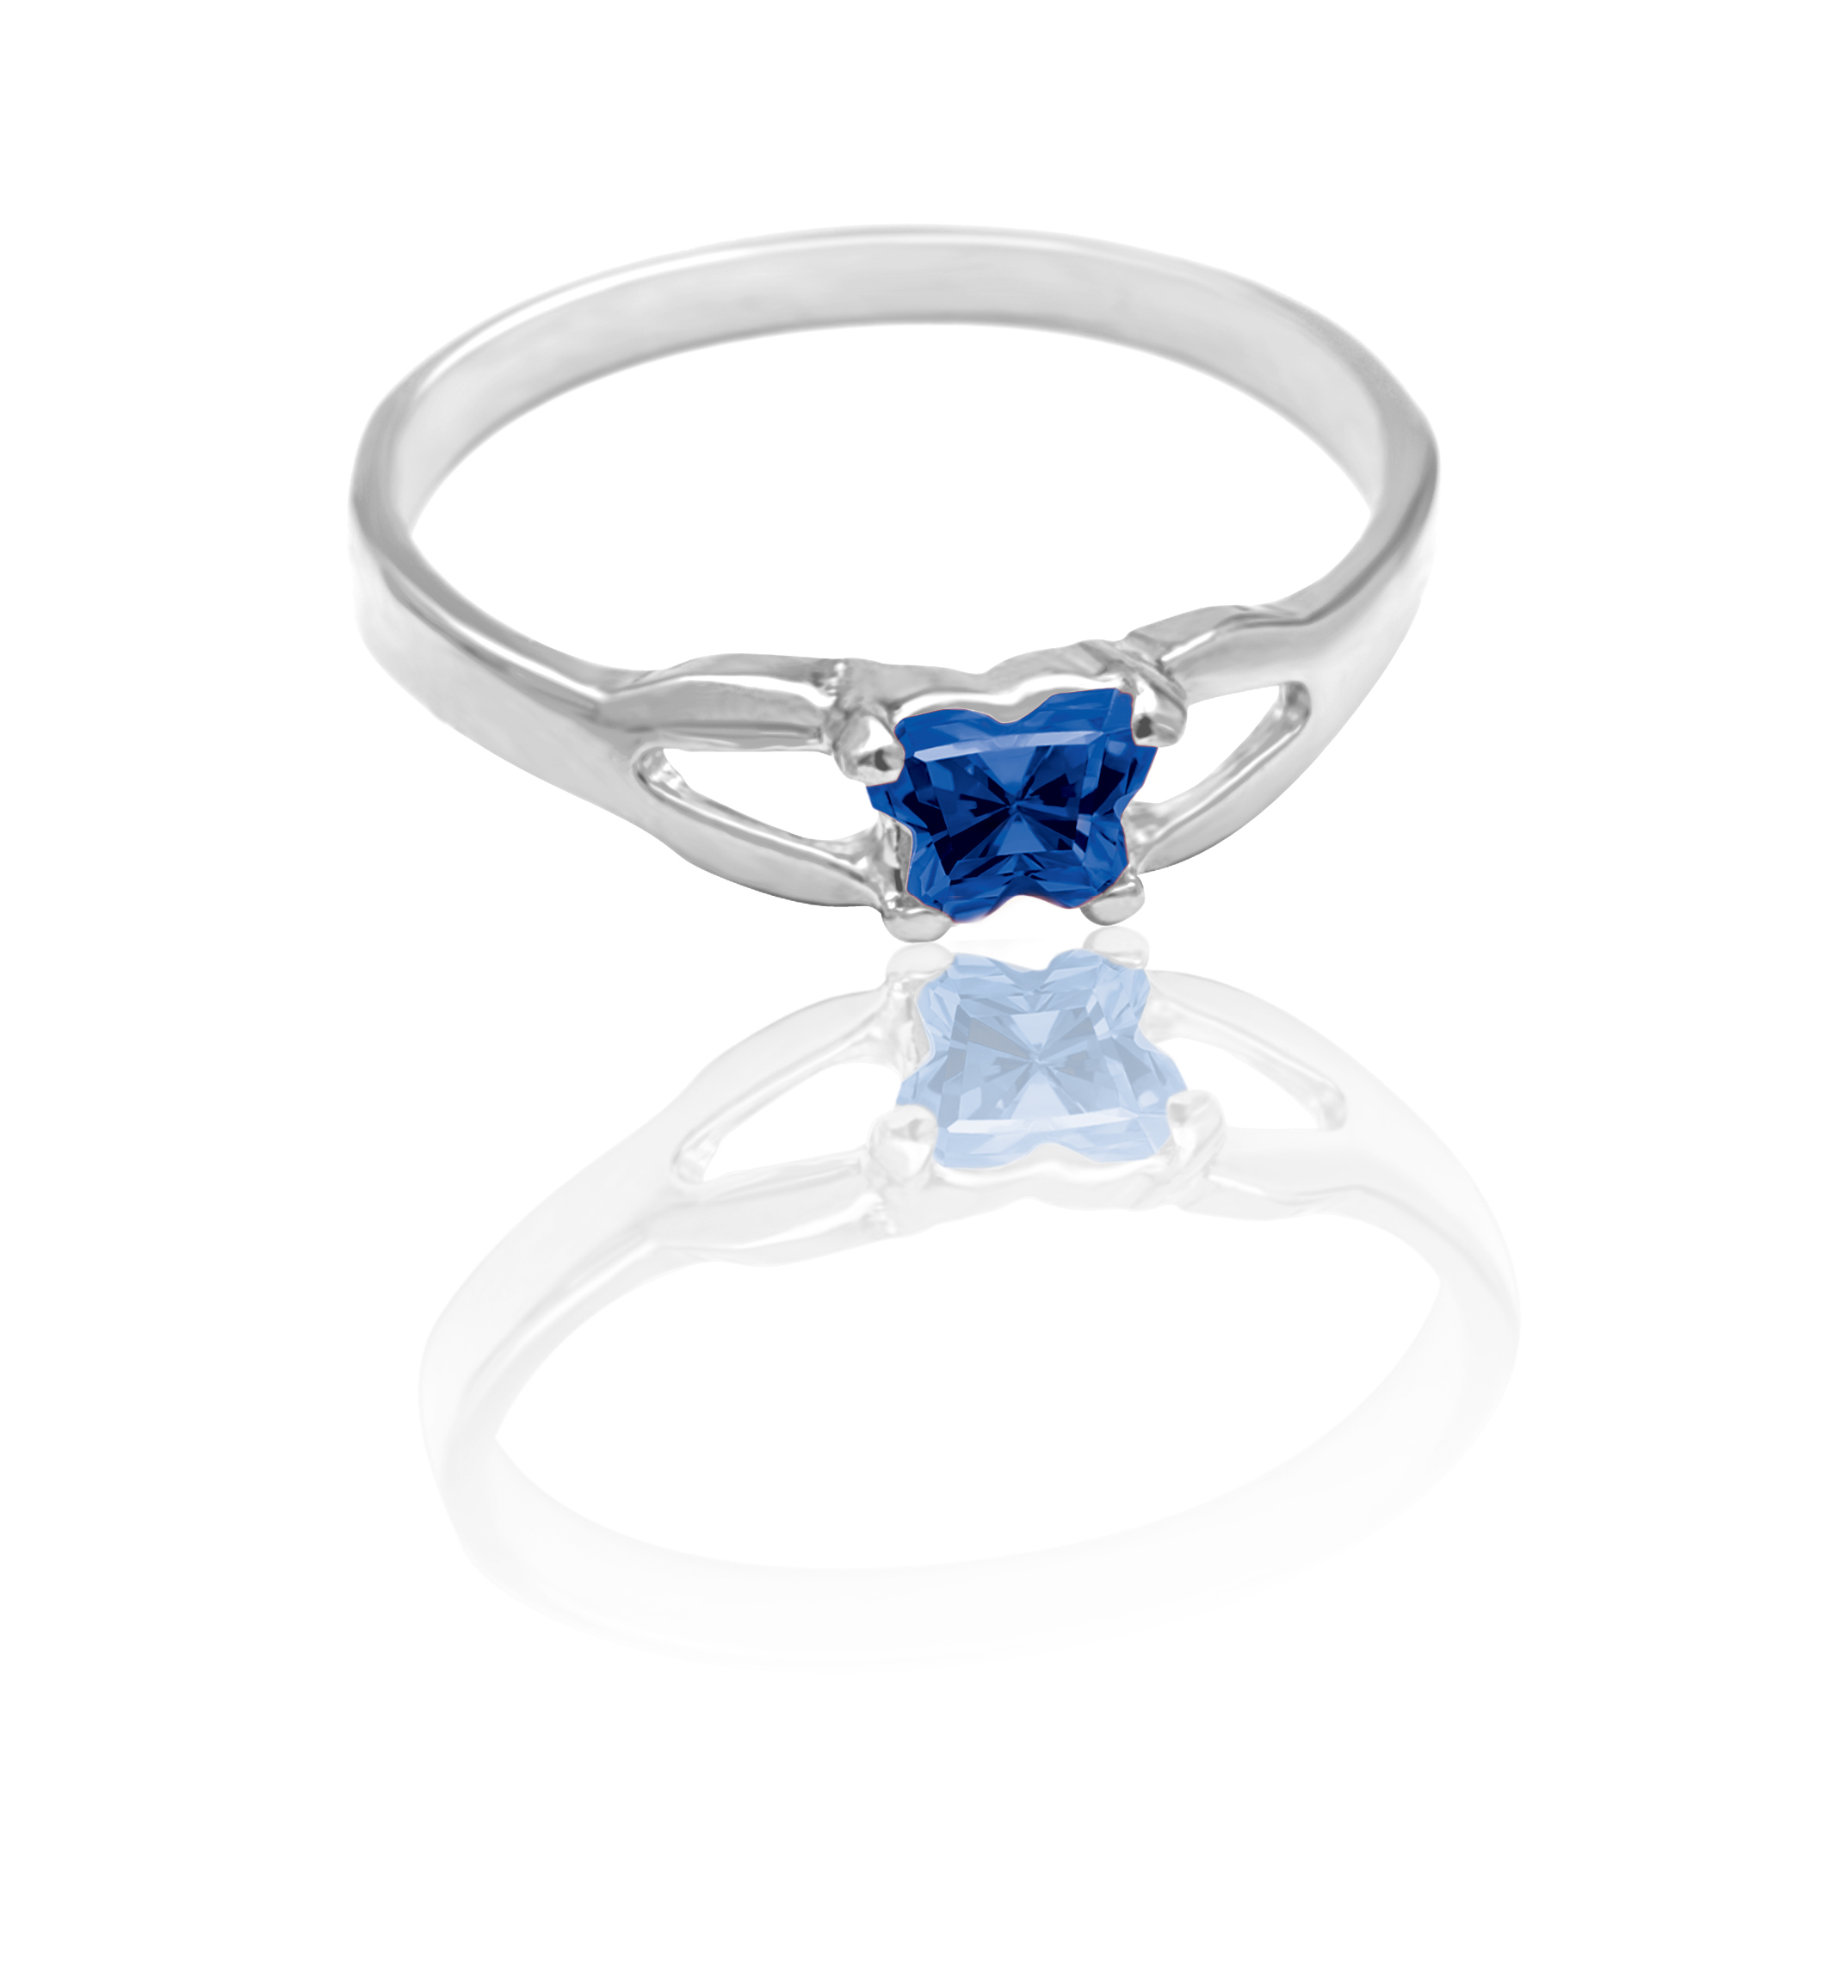 children ring in sterling silver with navy blue cubic zirconia (month of September)*